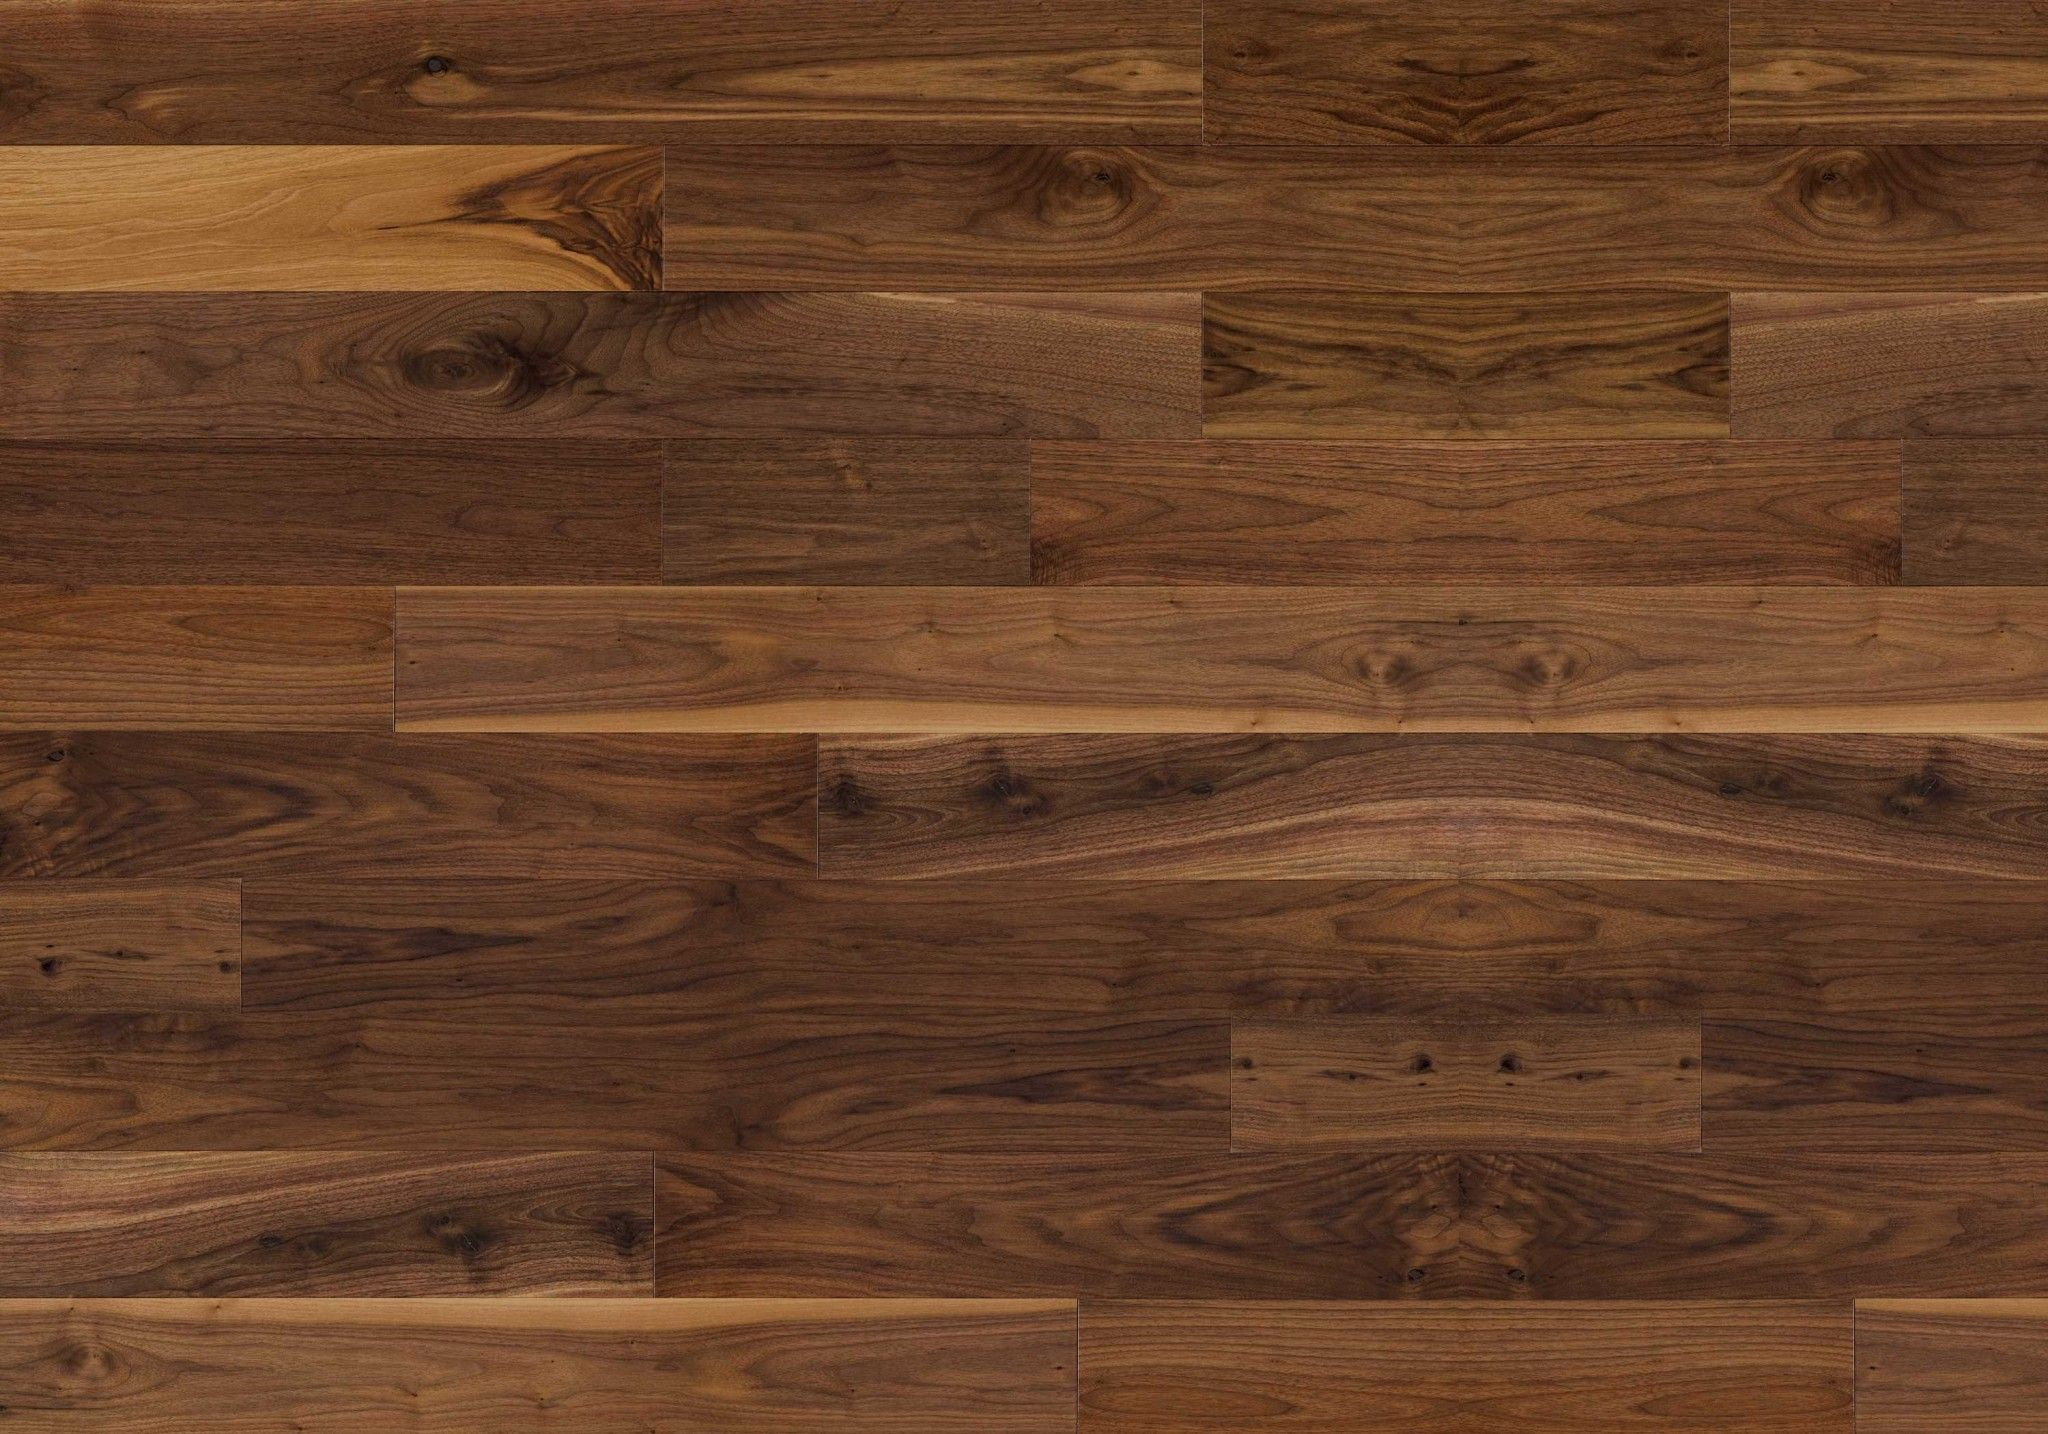 Резултат слика за Wooden Deck Floor Texture Porodica - Black walnut hardwood flooring